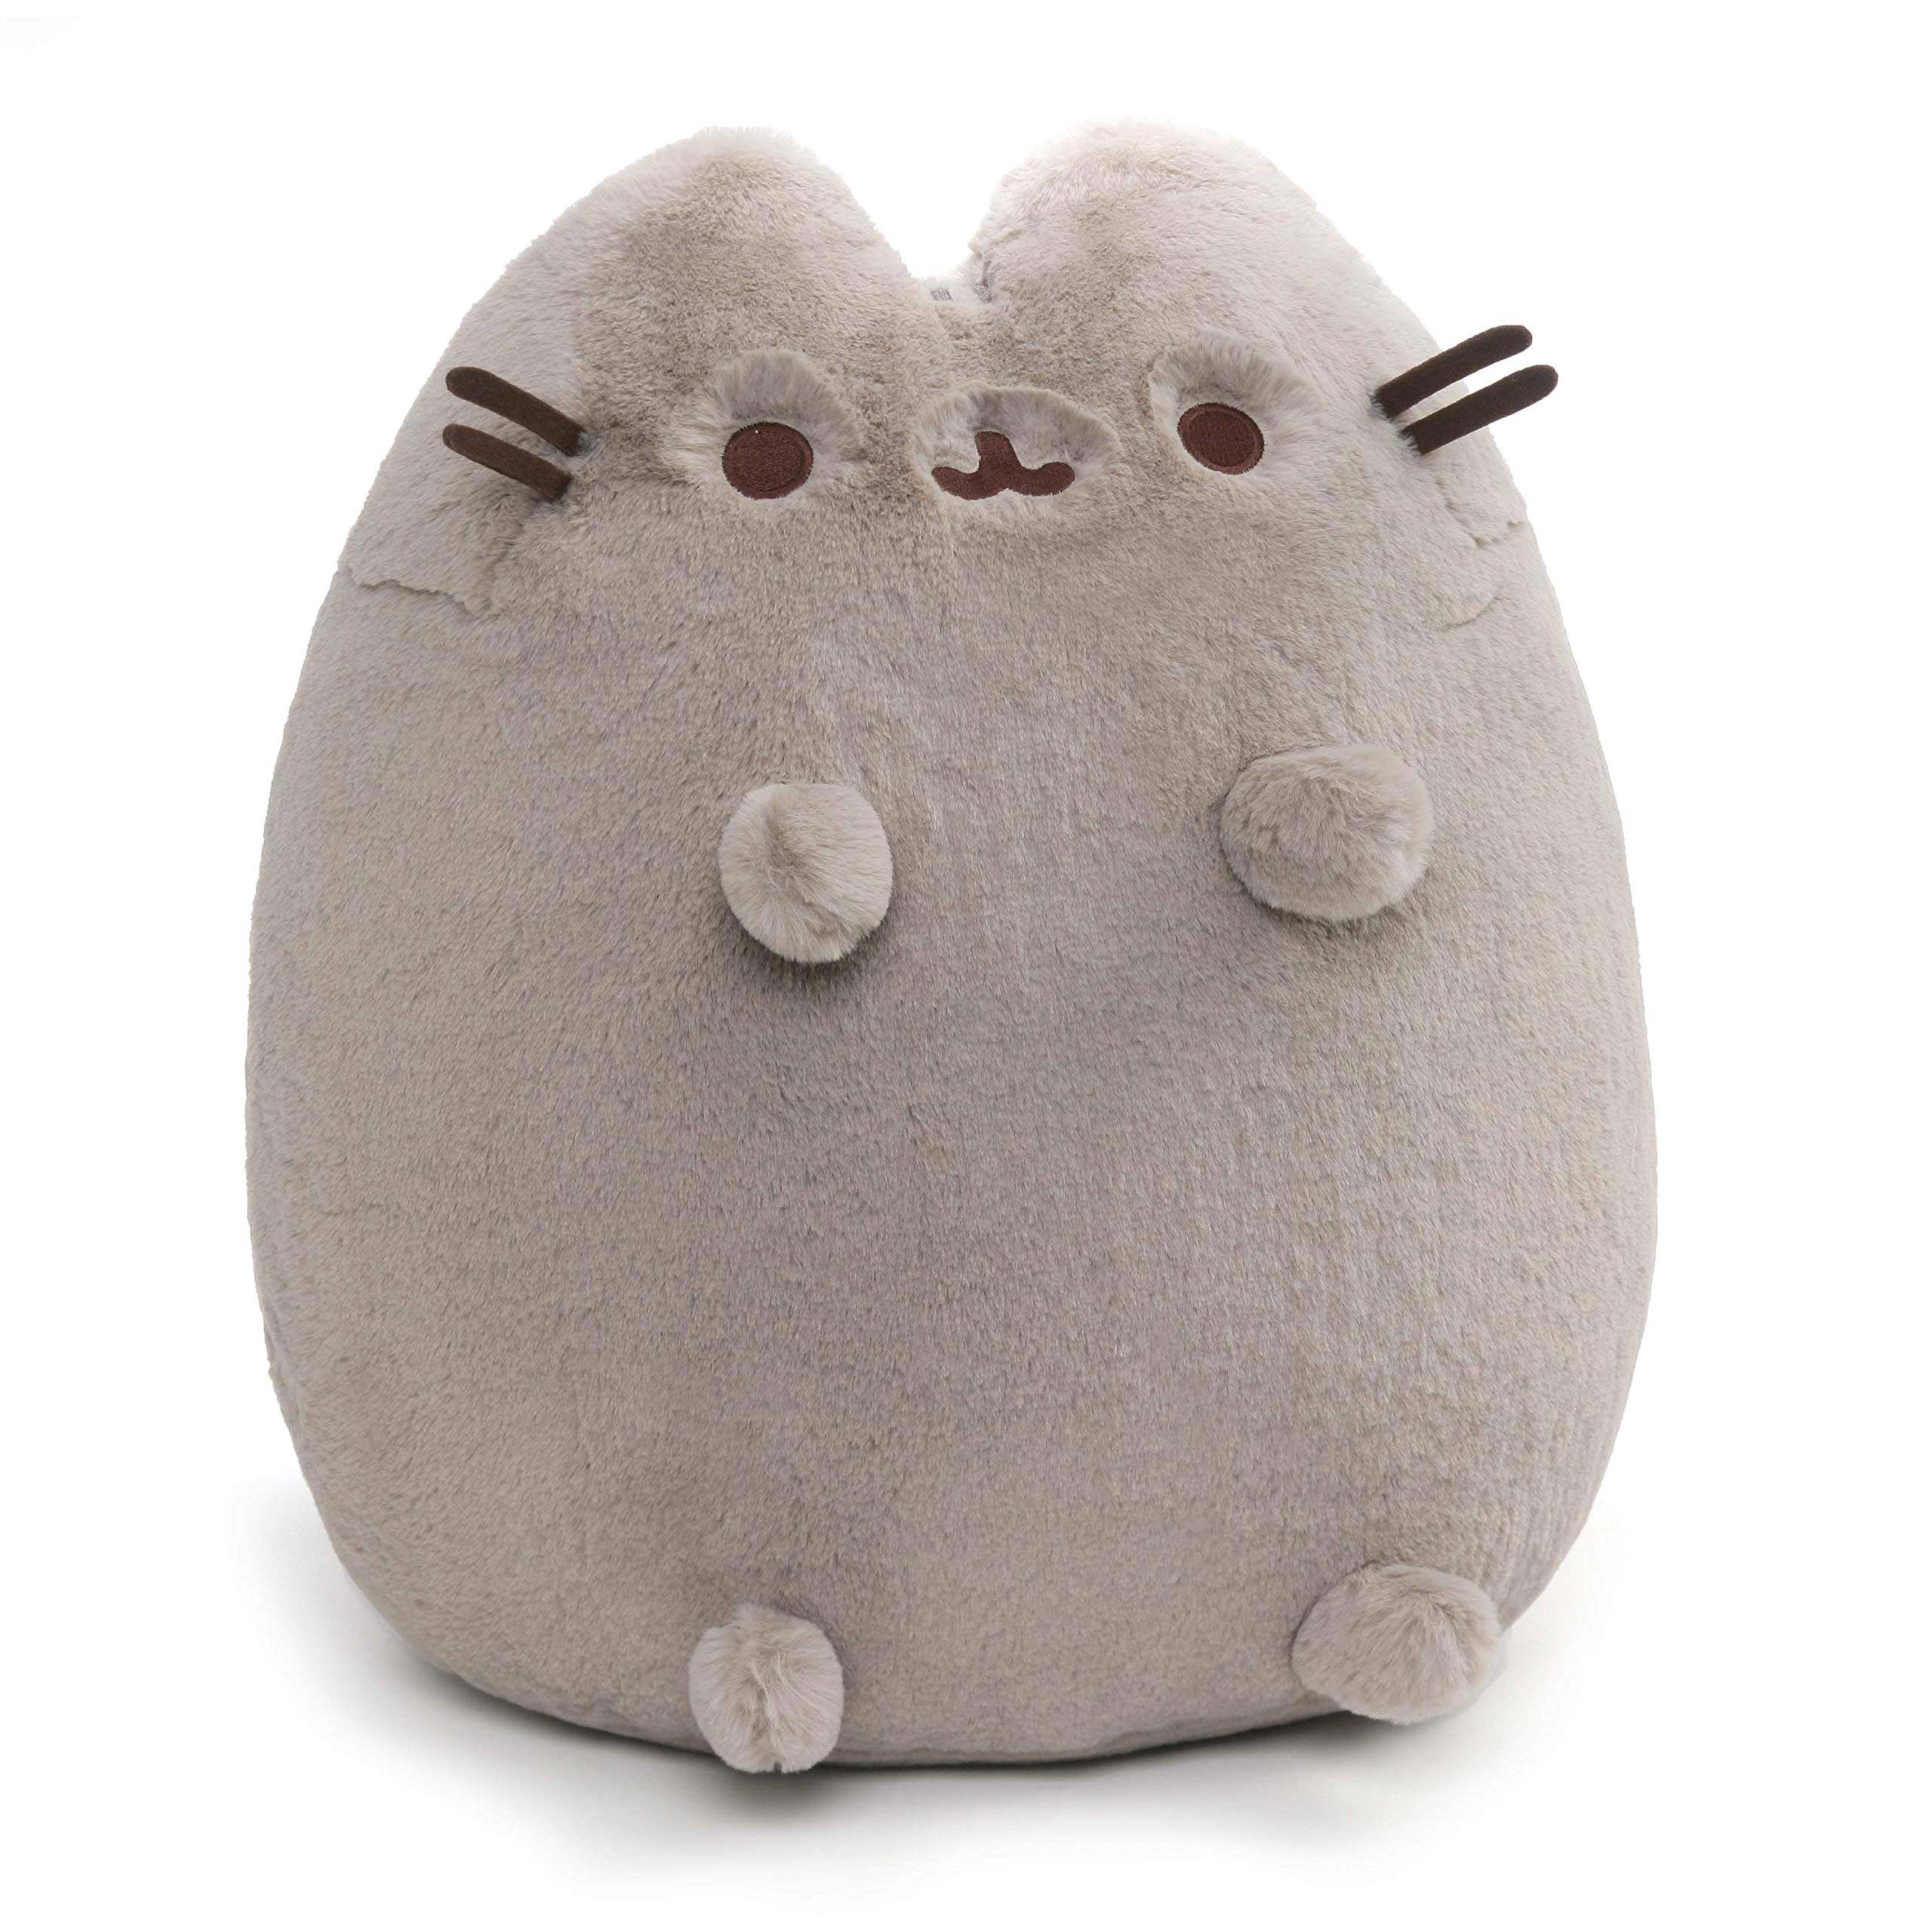 GUND Deluxe Pusheen Sitting Pose Plush Stuffed Animal Cat, Grey, 19'' by GUND